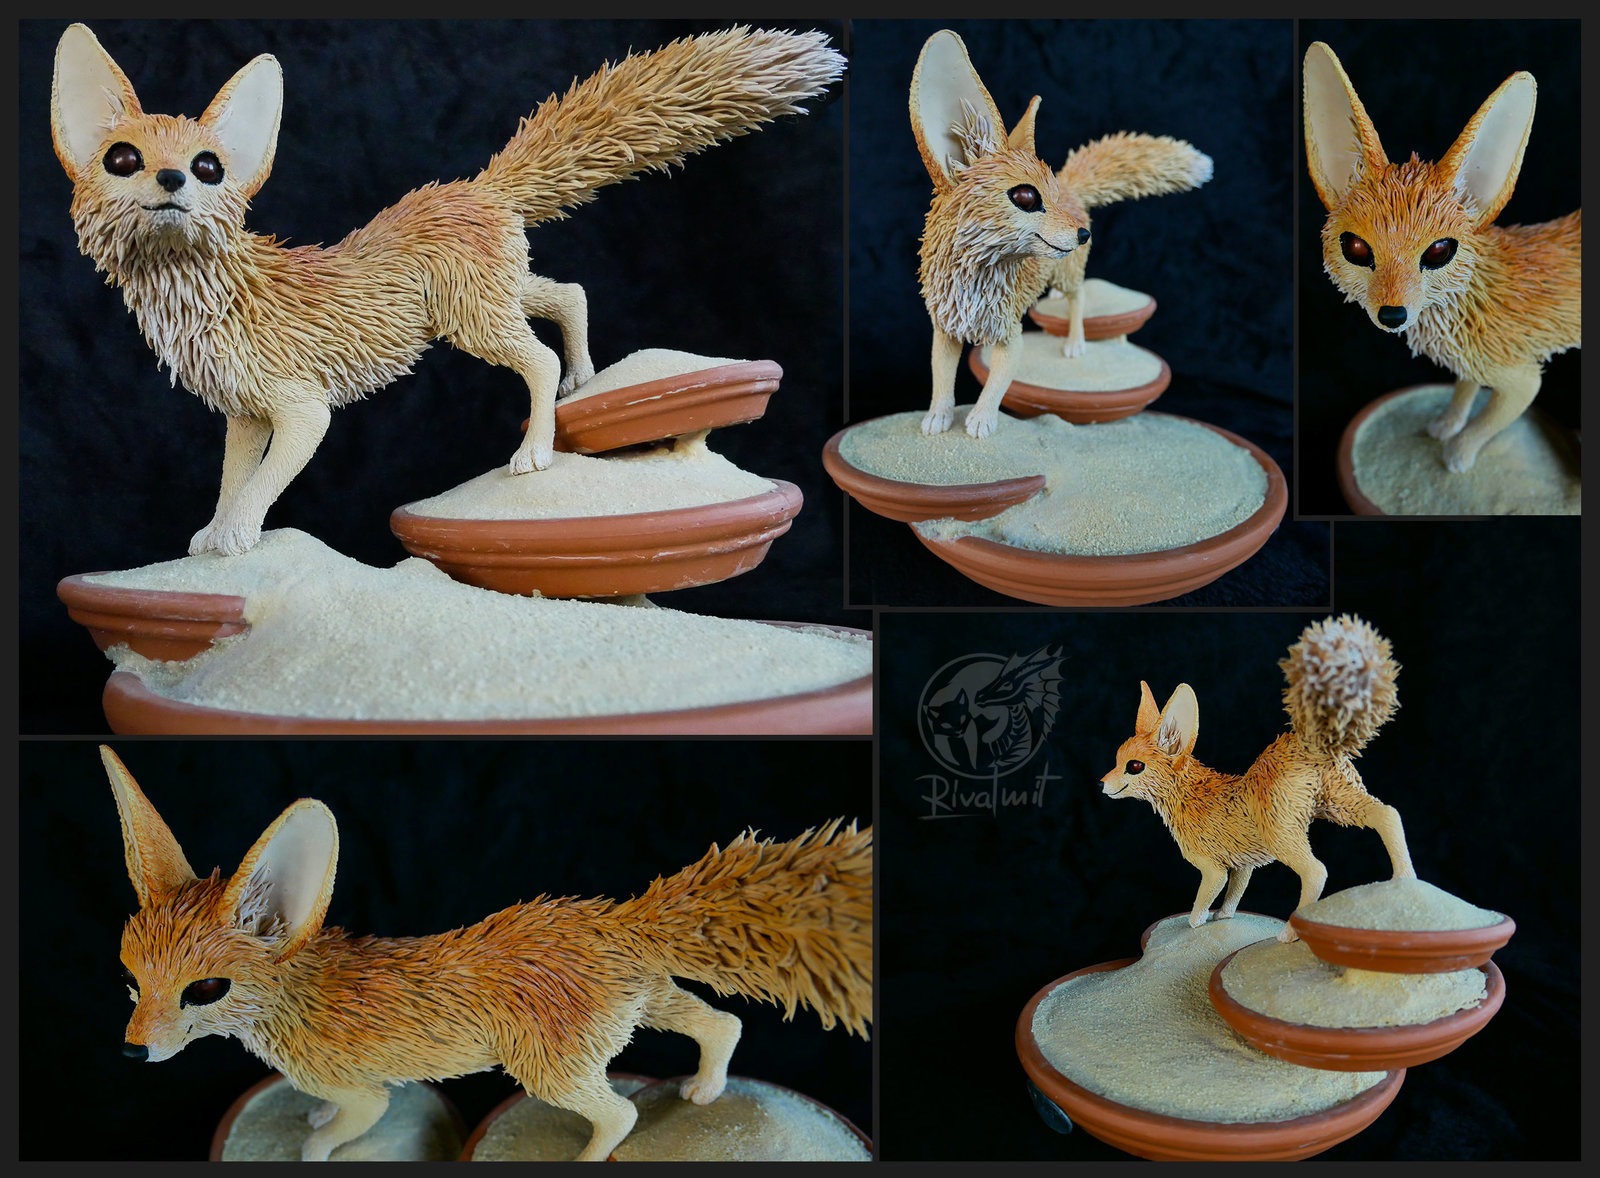 sculpture fennec fox desert Scorching Sands I call Home